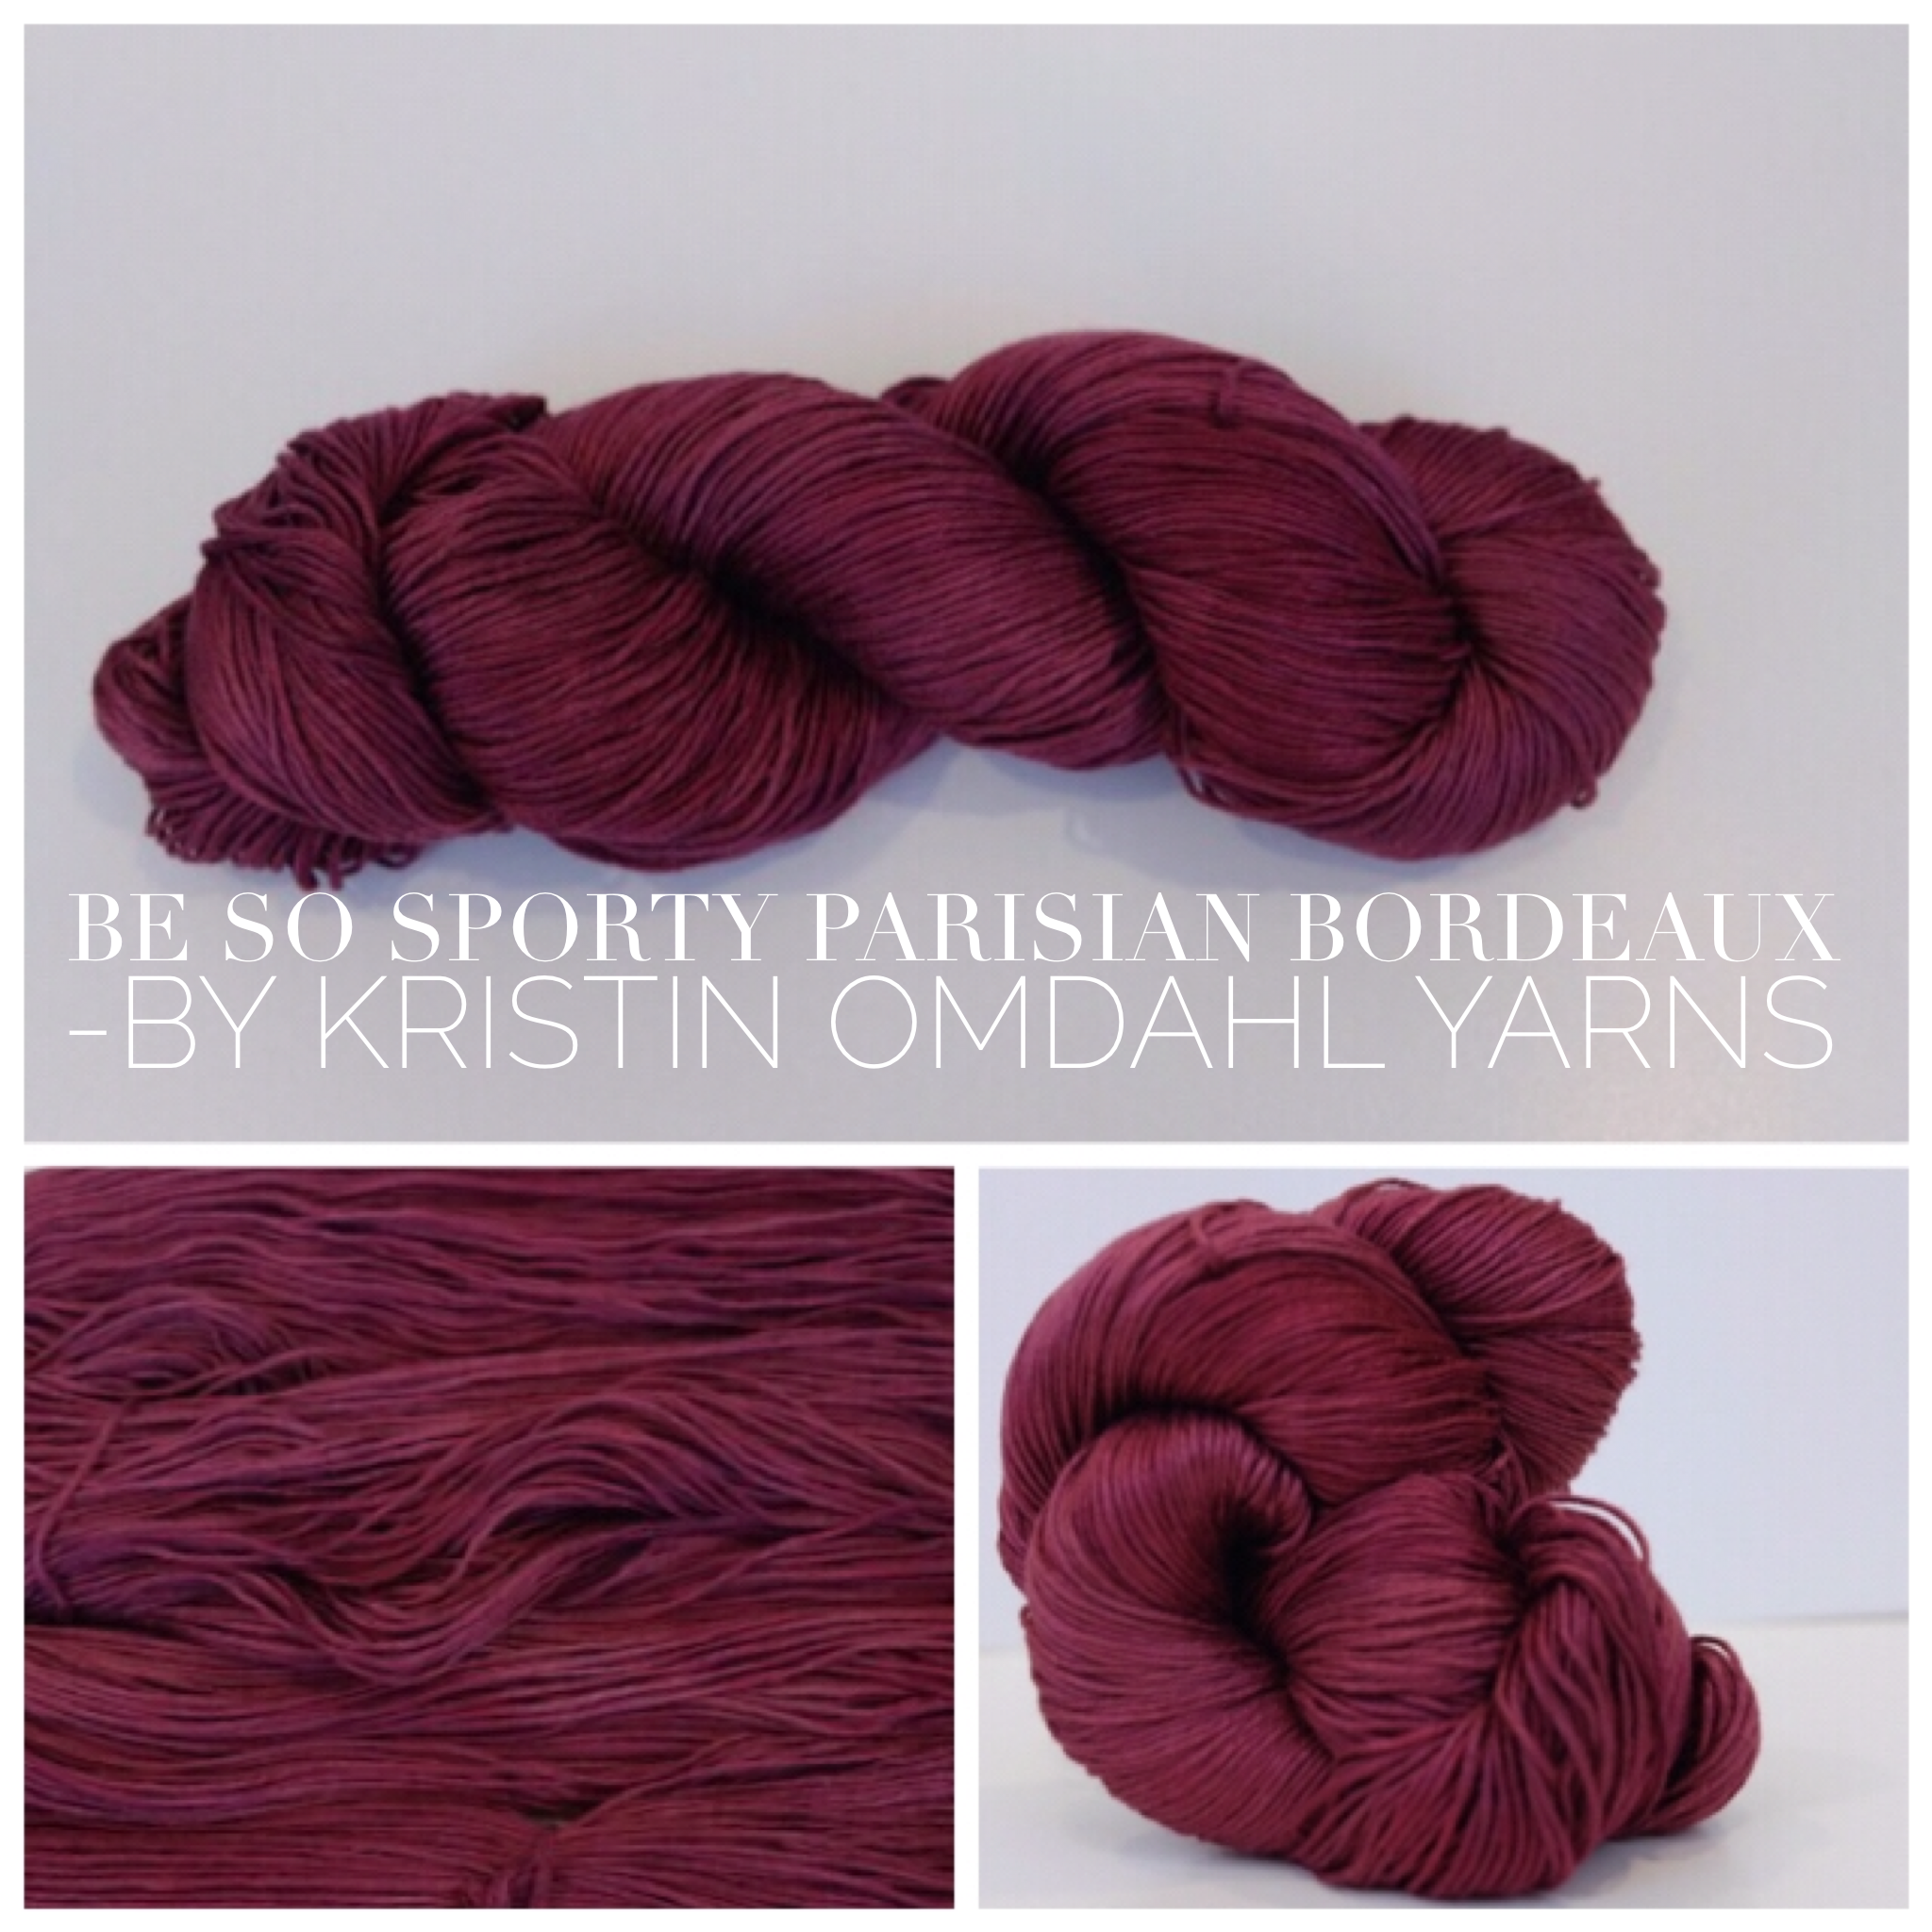 BSS parisian bordeaux collage.PNG